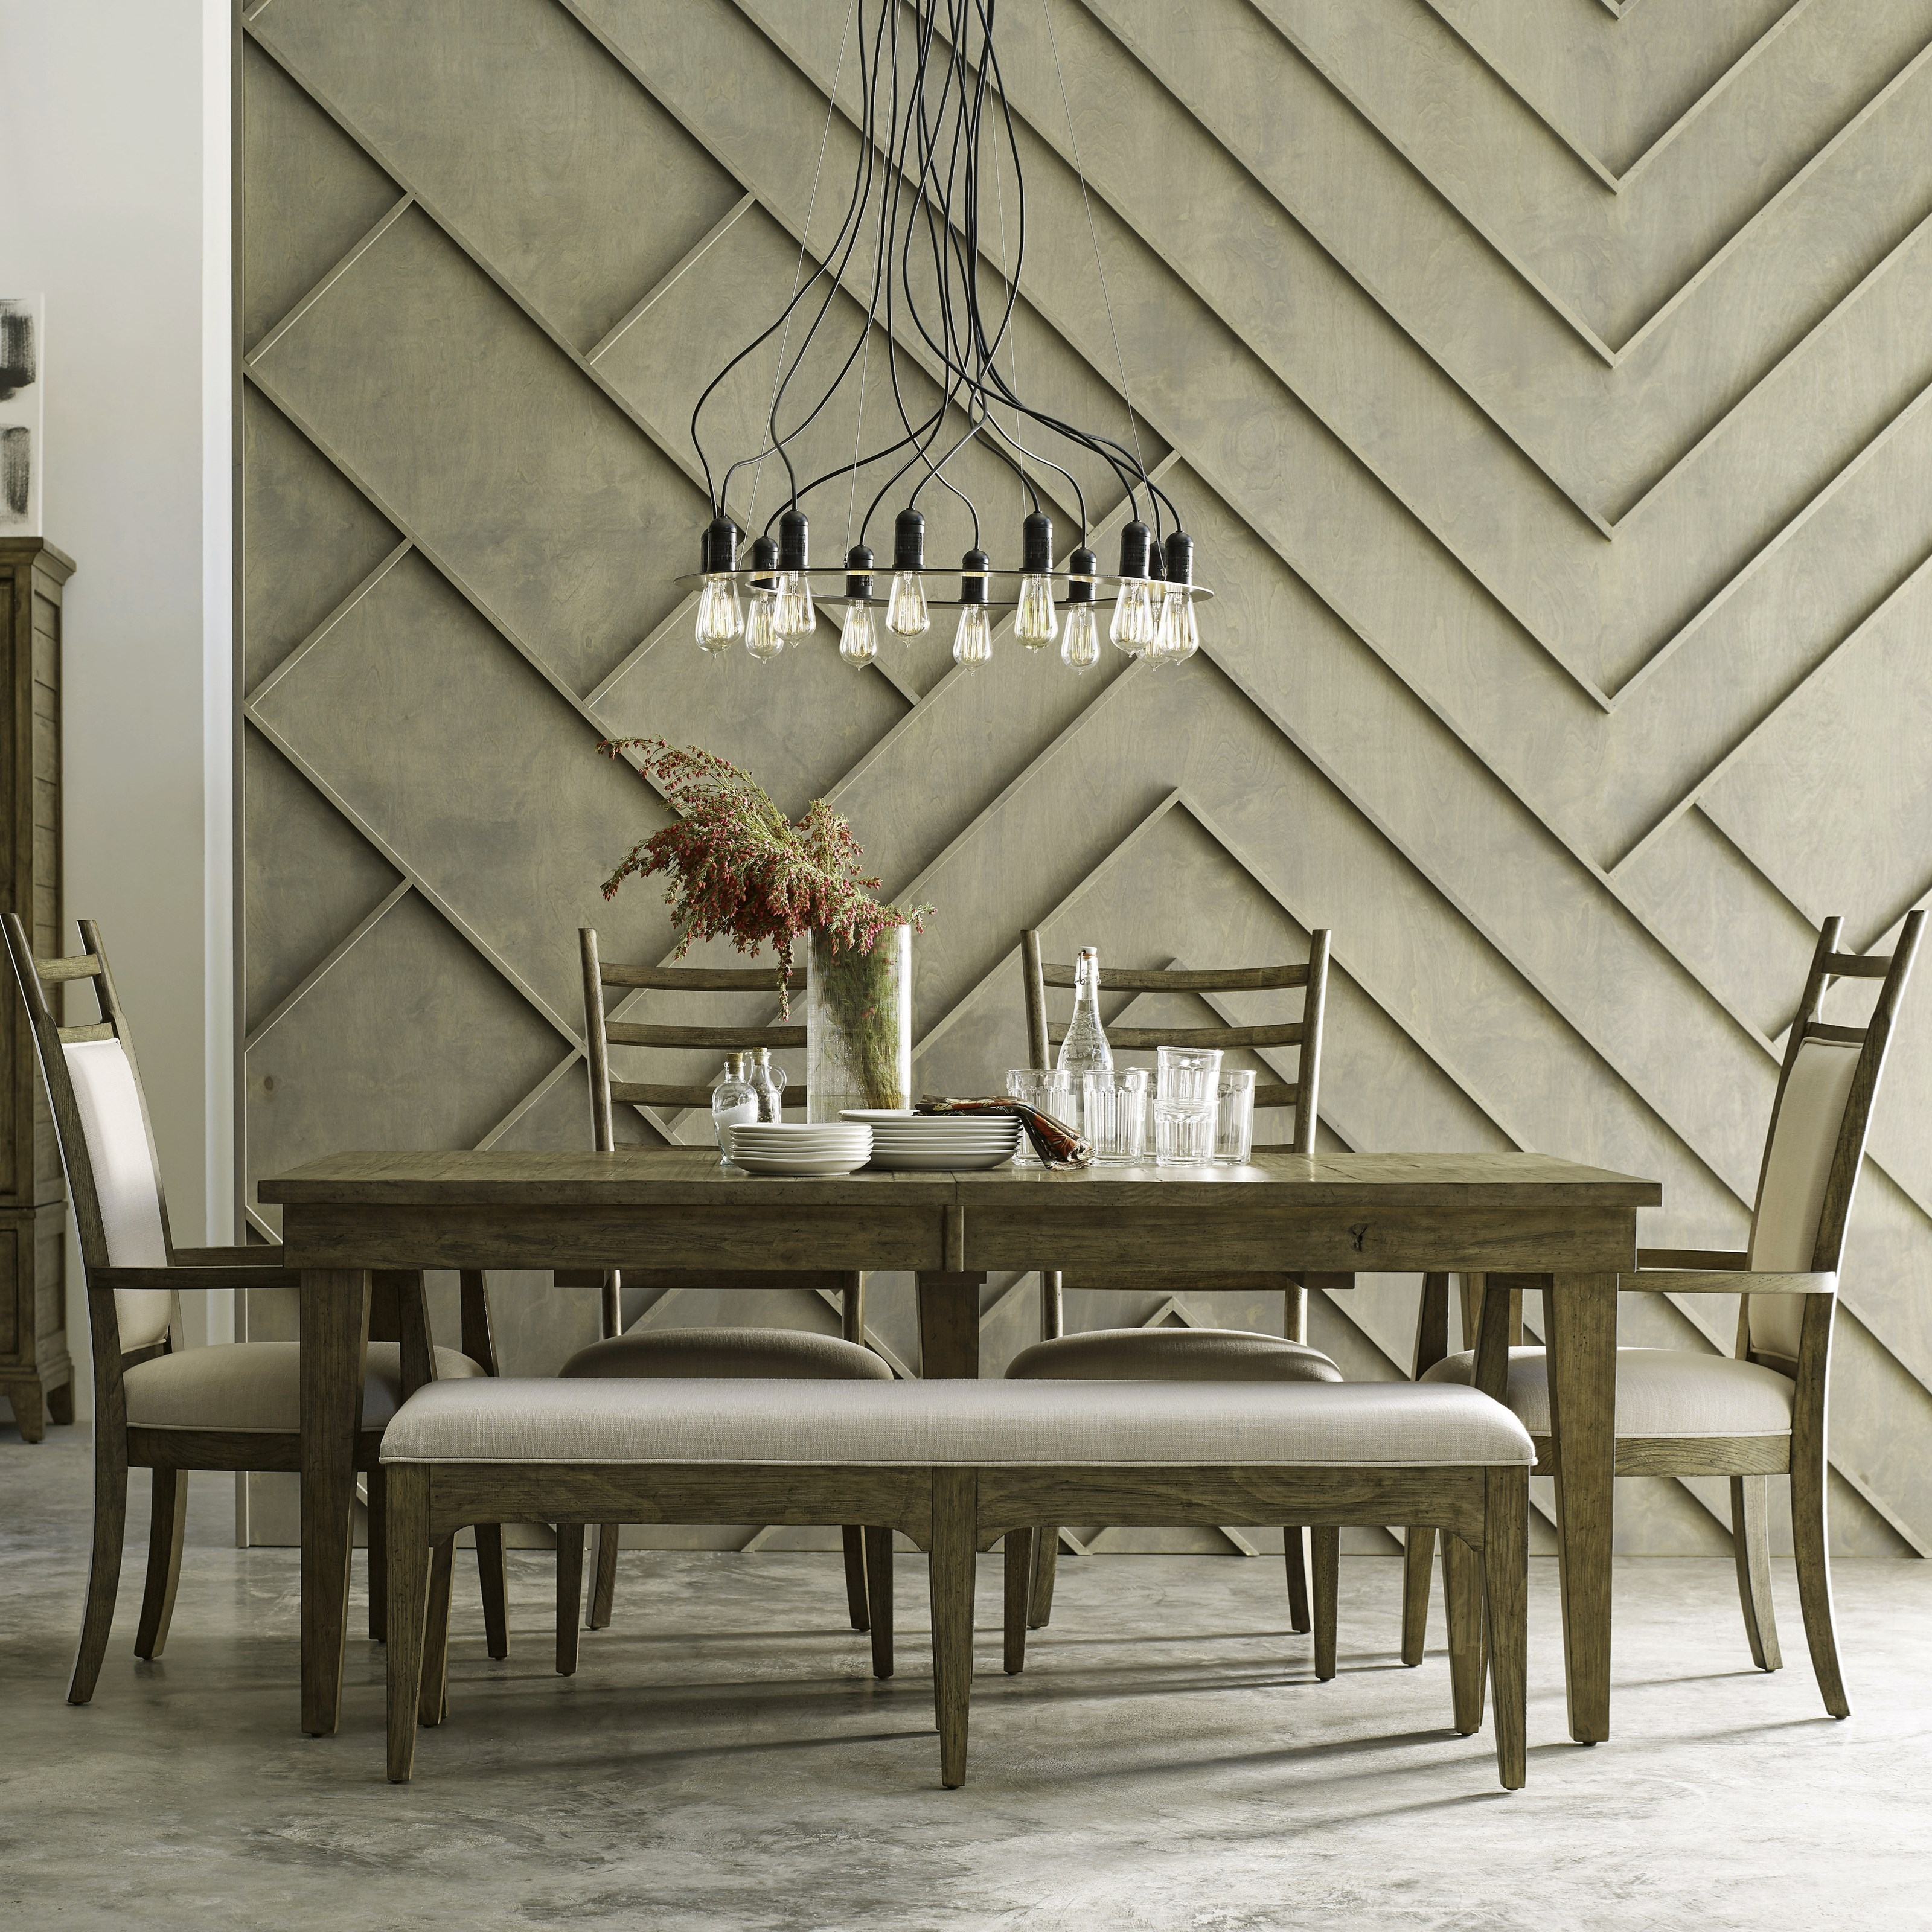 Plank Road 6 Pc Dining Set w/ Bench by Kincaid Furniture at Home Collections Furniture